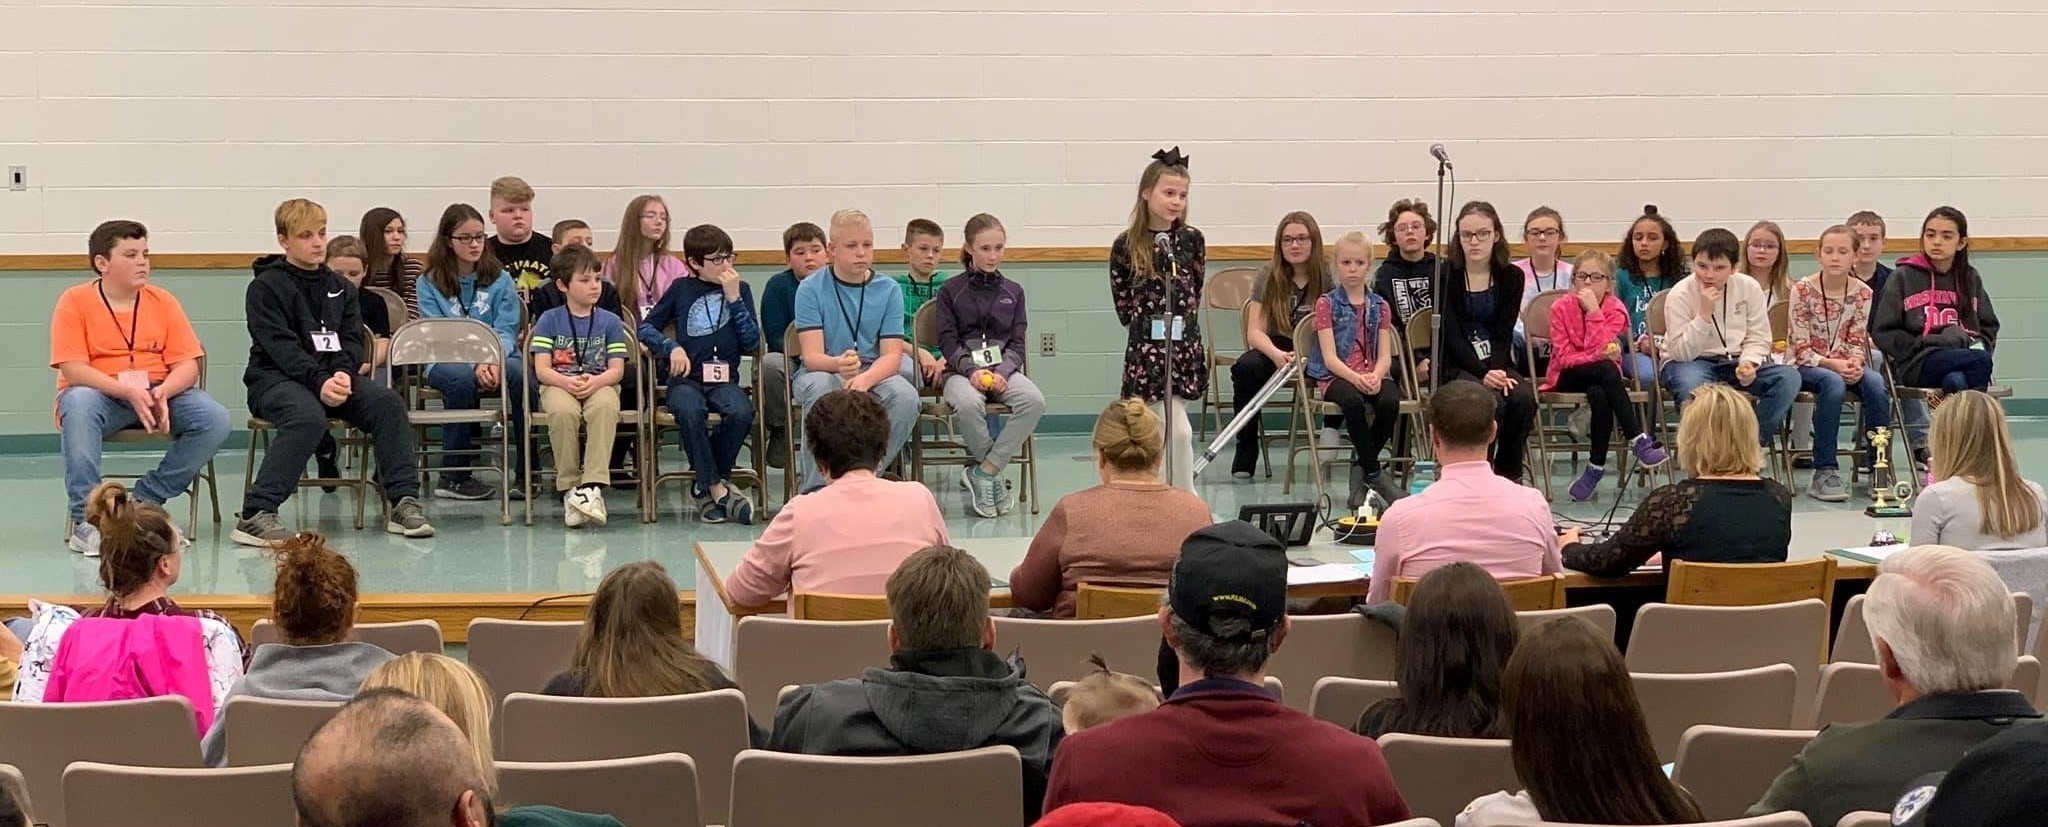 2020 District Spelling Bee